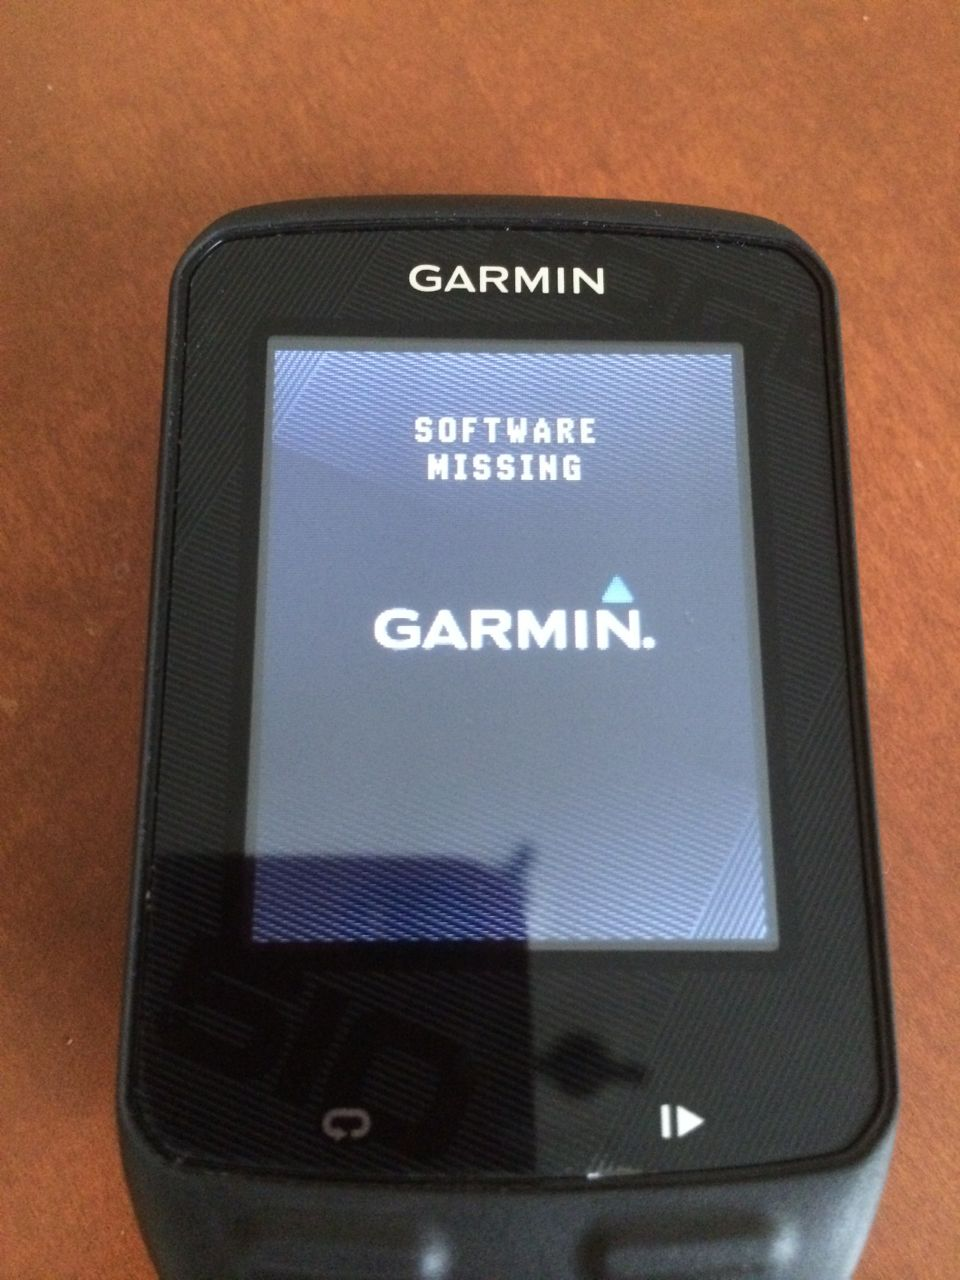 where to get firmware update for my garmin 2597lmt